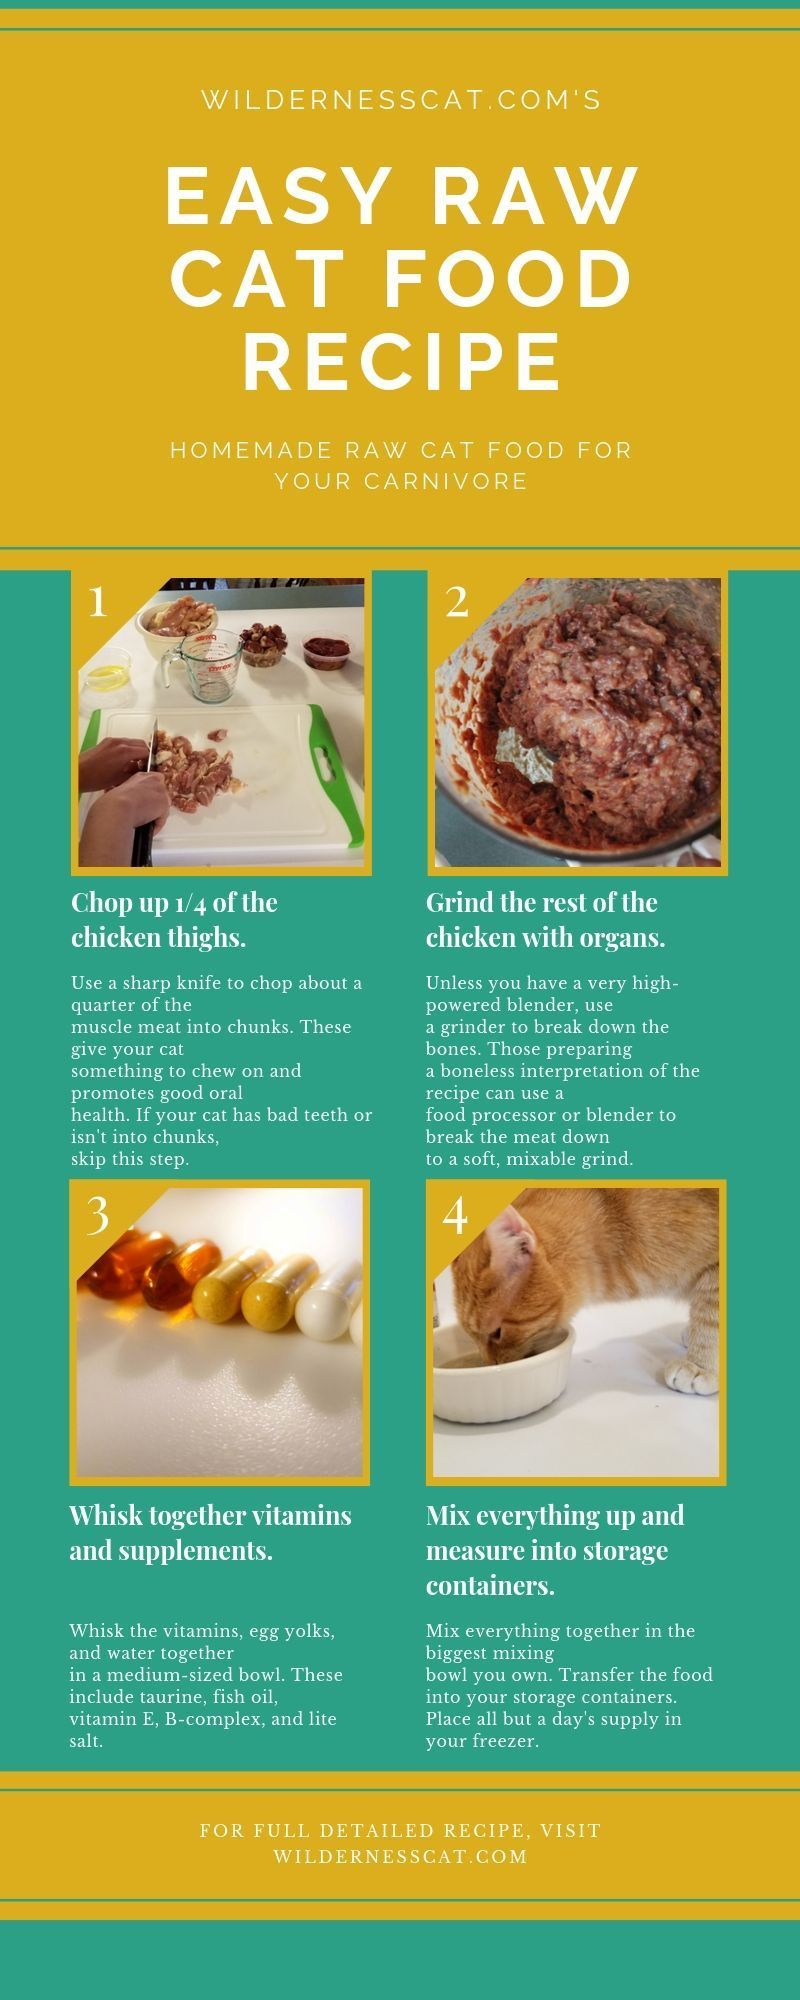 How To Make Raw Cat Food 11 Hacks To Make It Easy Raw Cat Food Recipes Homemade Raw Cat Food Healthy Cat Food